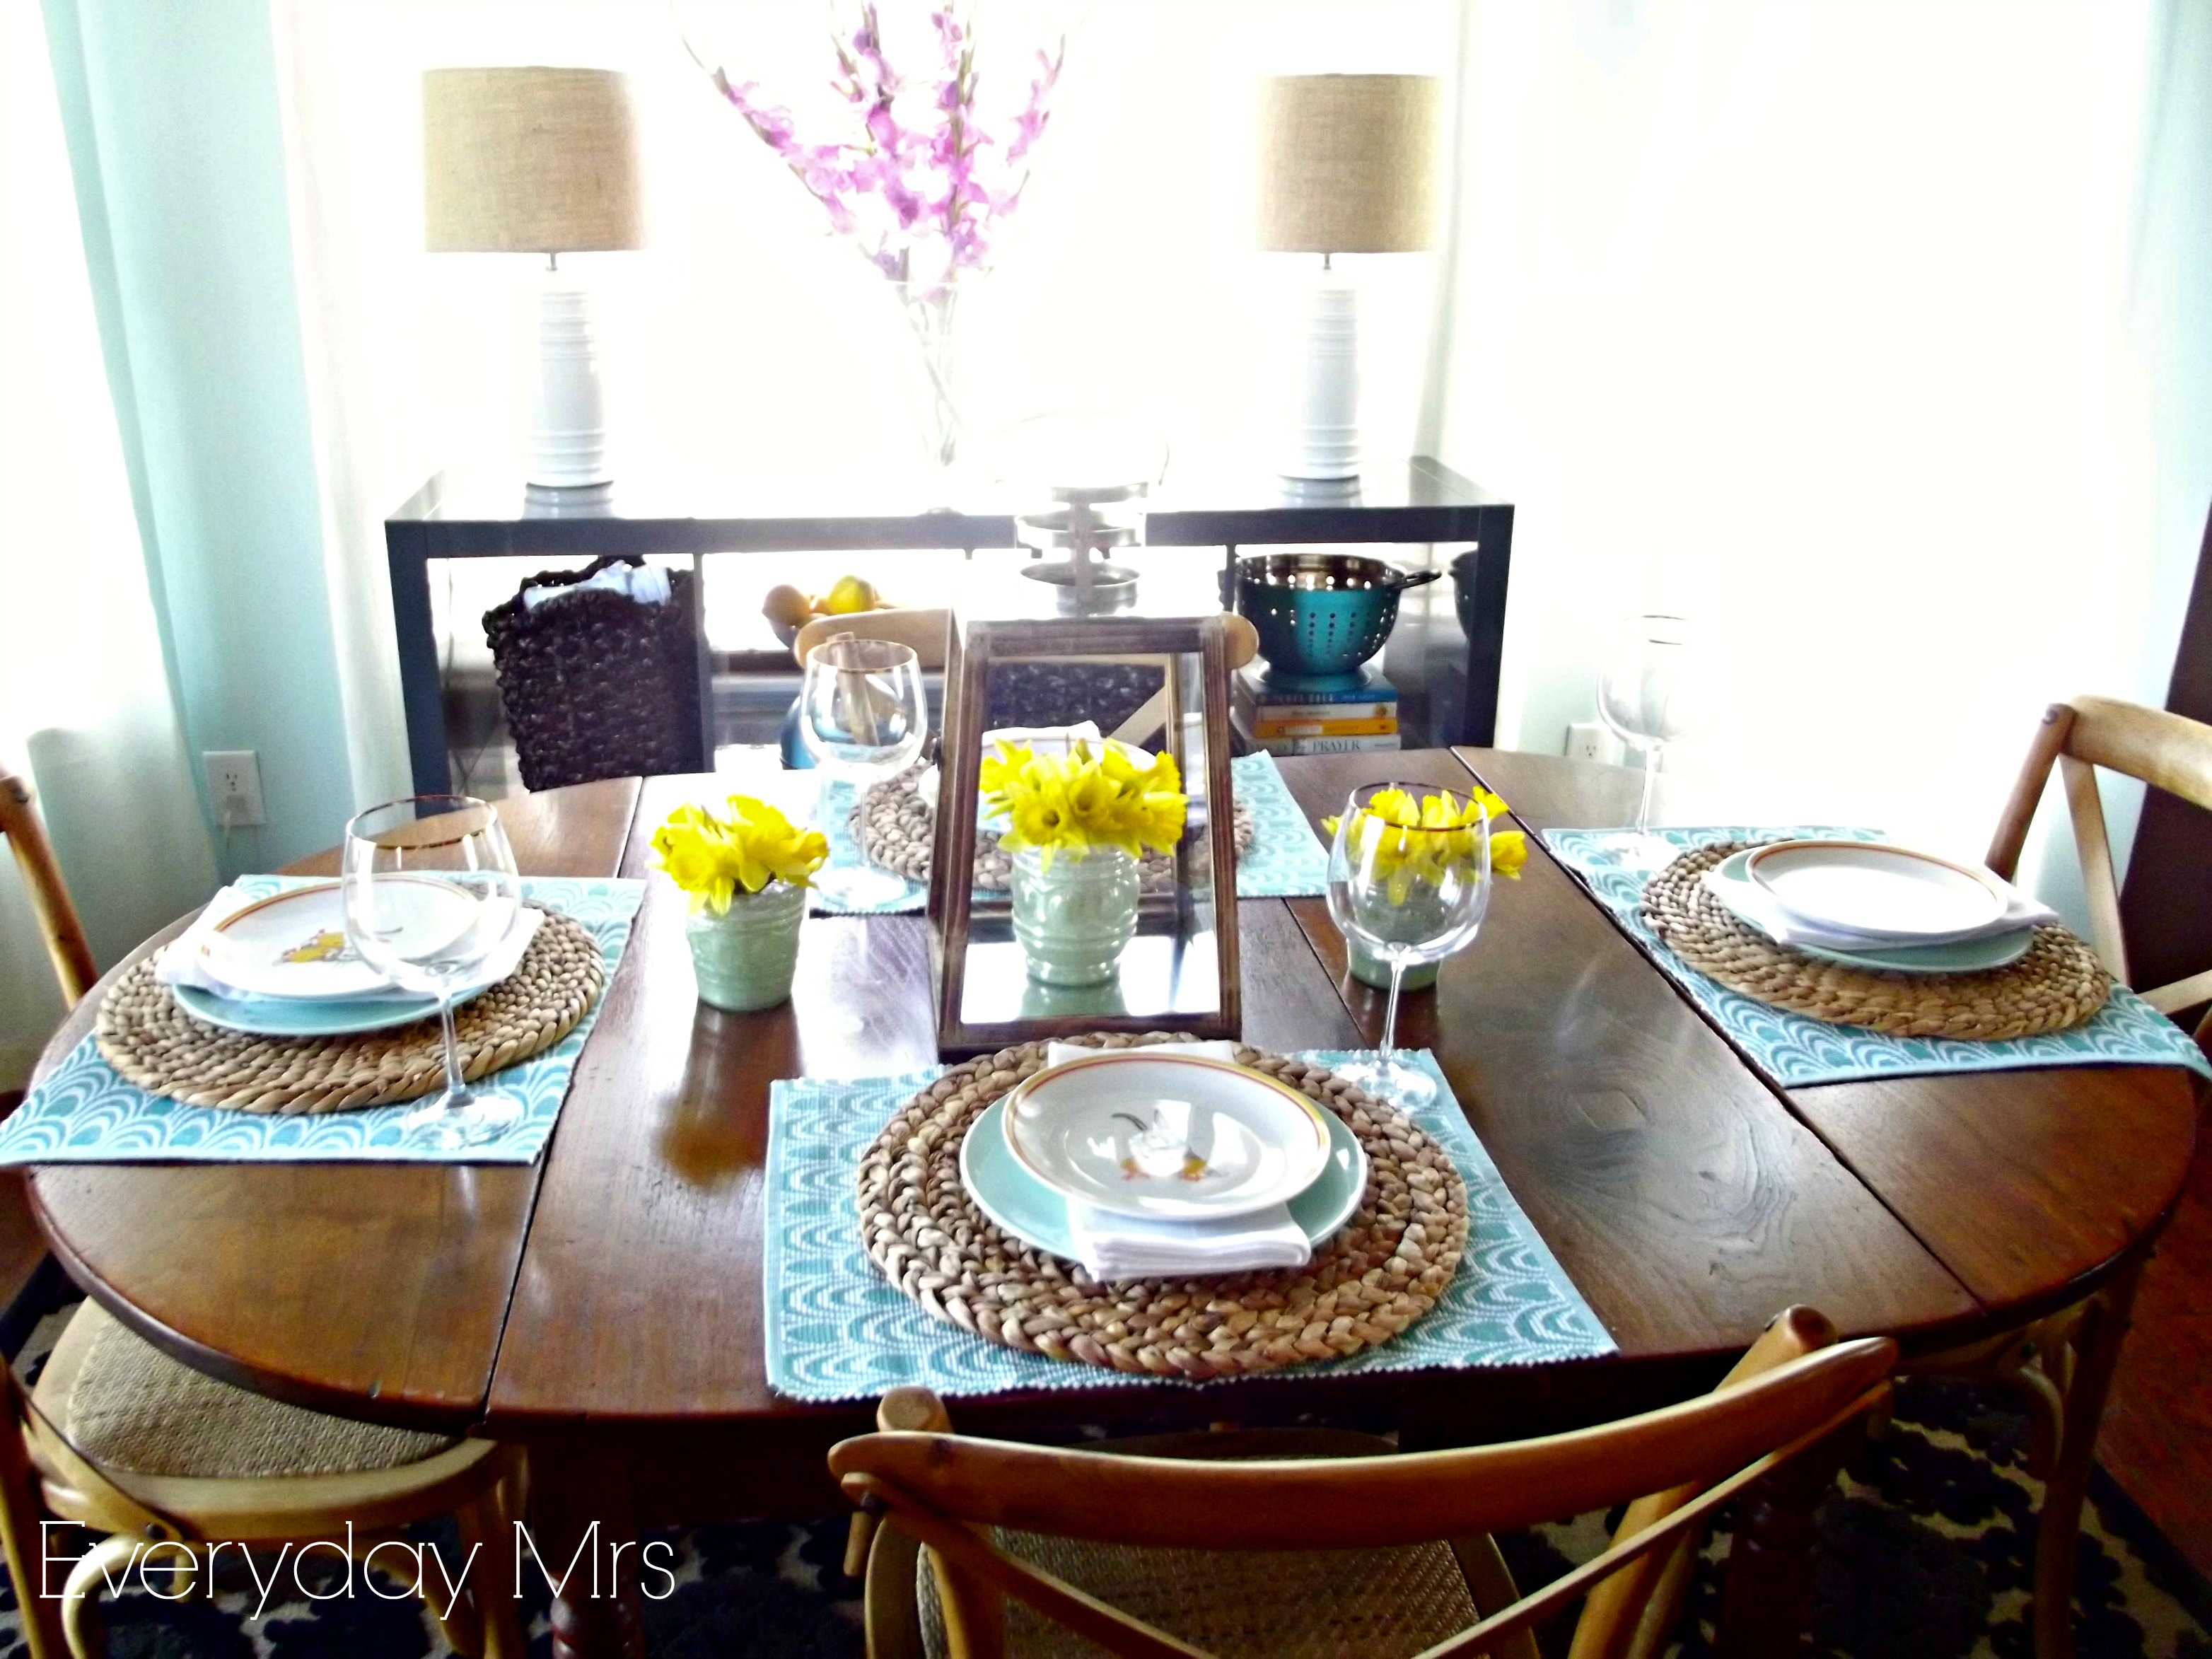 Everyday easter table everyday mrs for Everyday kitchen table setting ideas